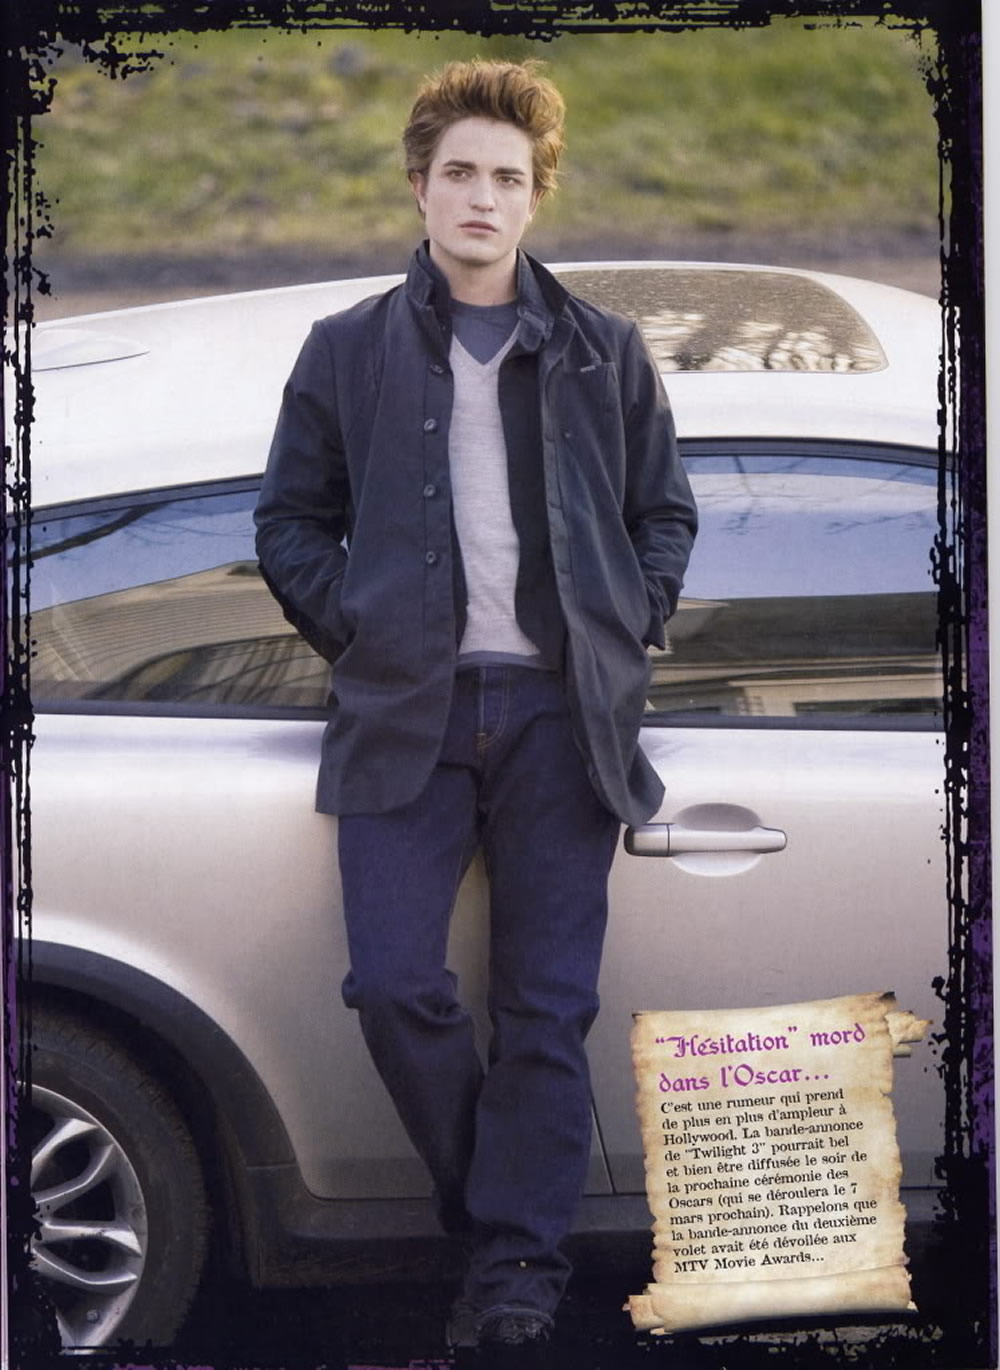 Robert Pattinson Twilight photo